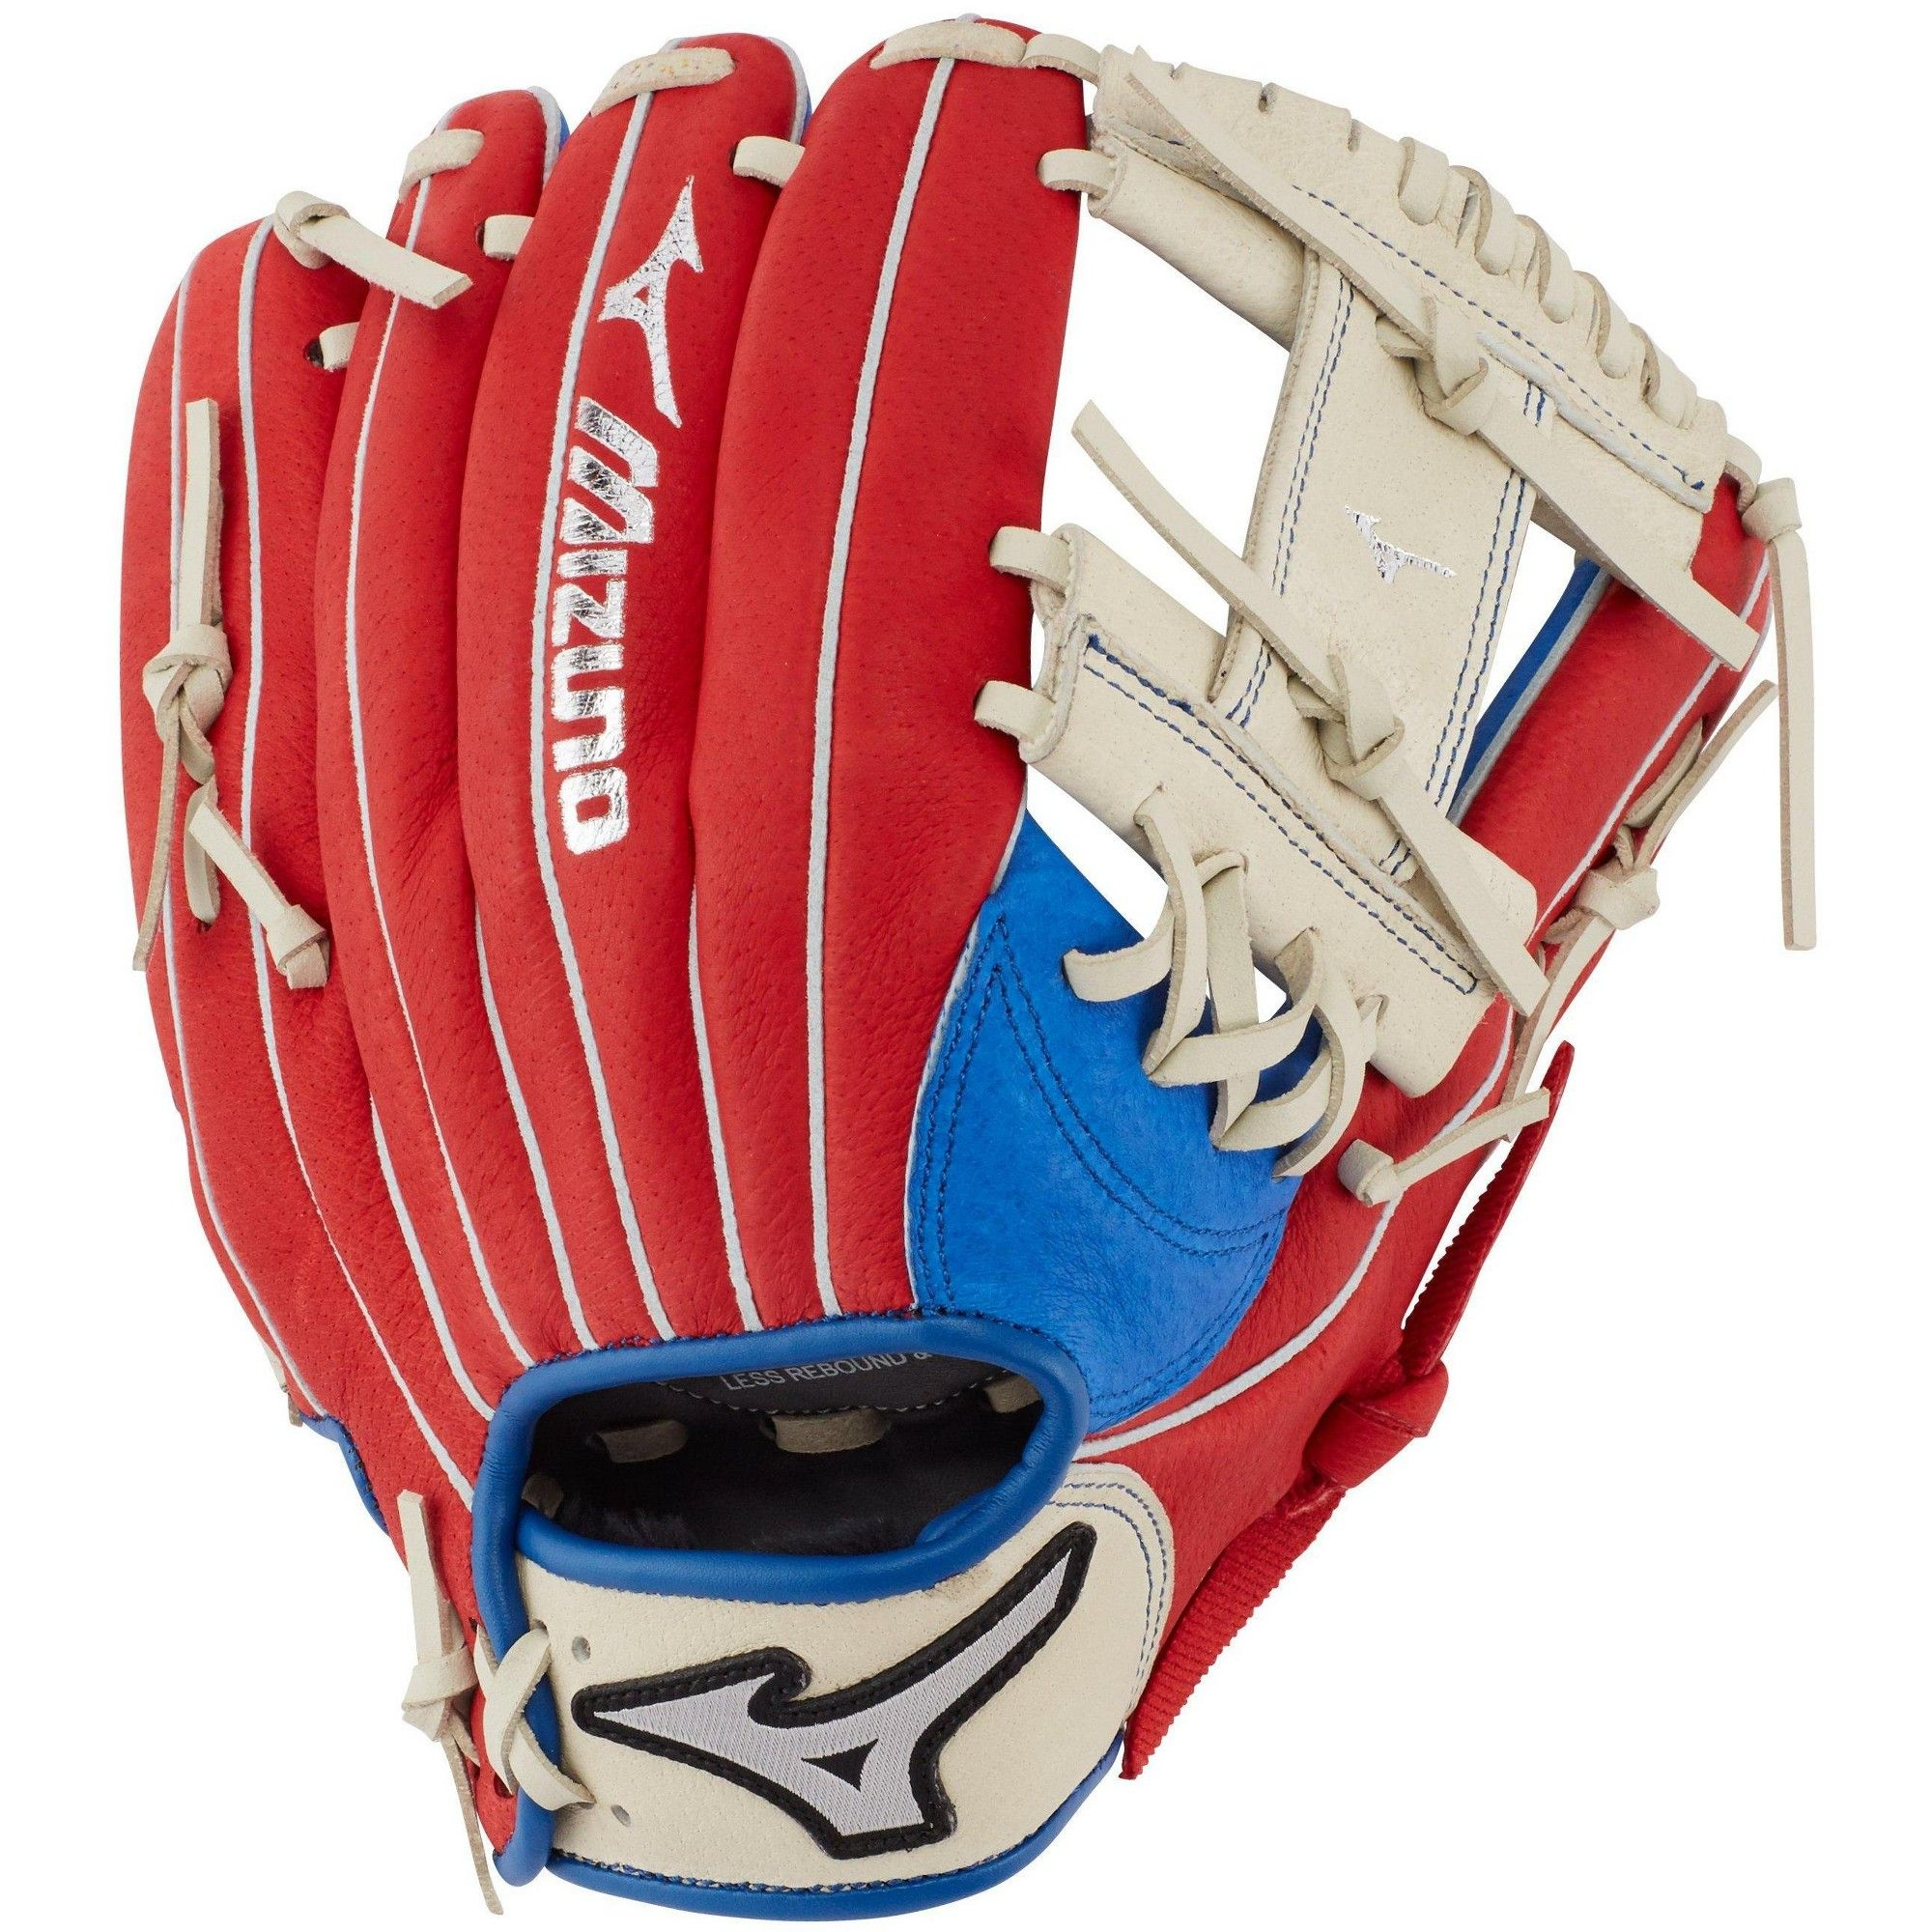 Mizuno Baseball Ball Gloves Prospect Series Powerclose Baseball Glove 11 312777 Size 11 Right Hand Roy Youth Baseball Gloves Baseball Glove Youth Baseball